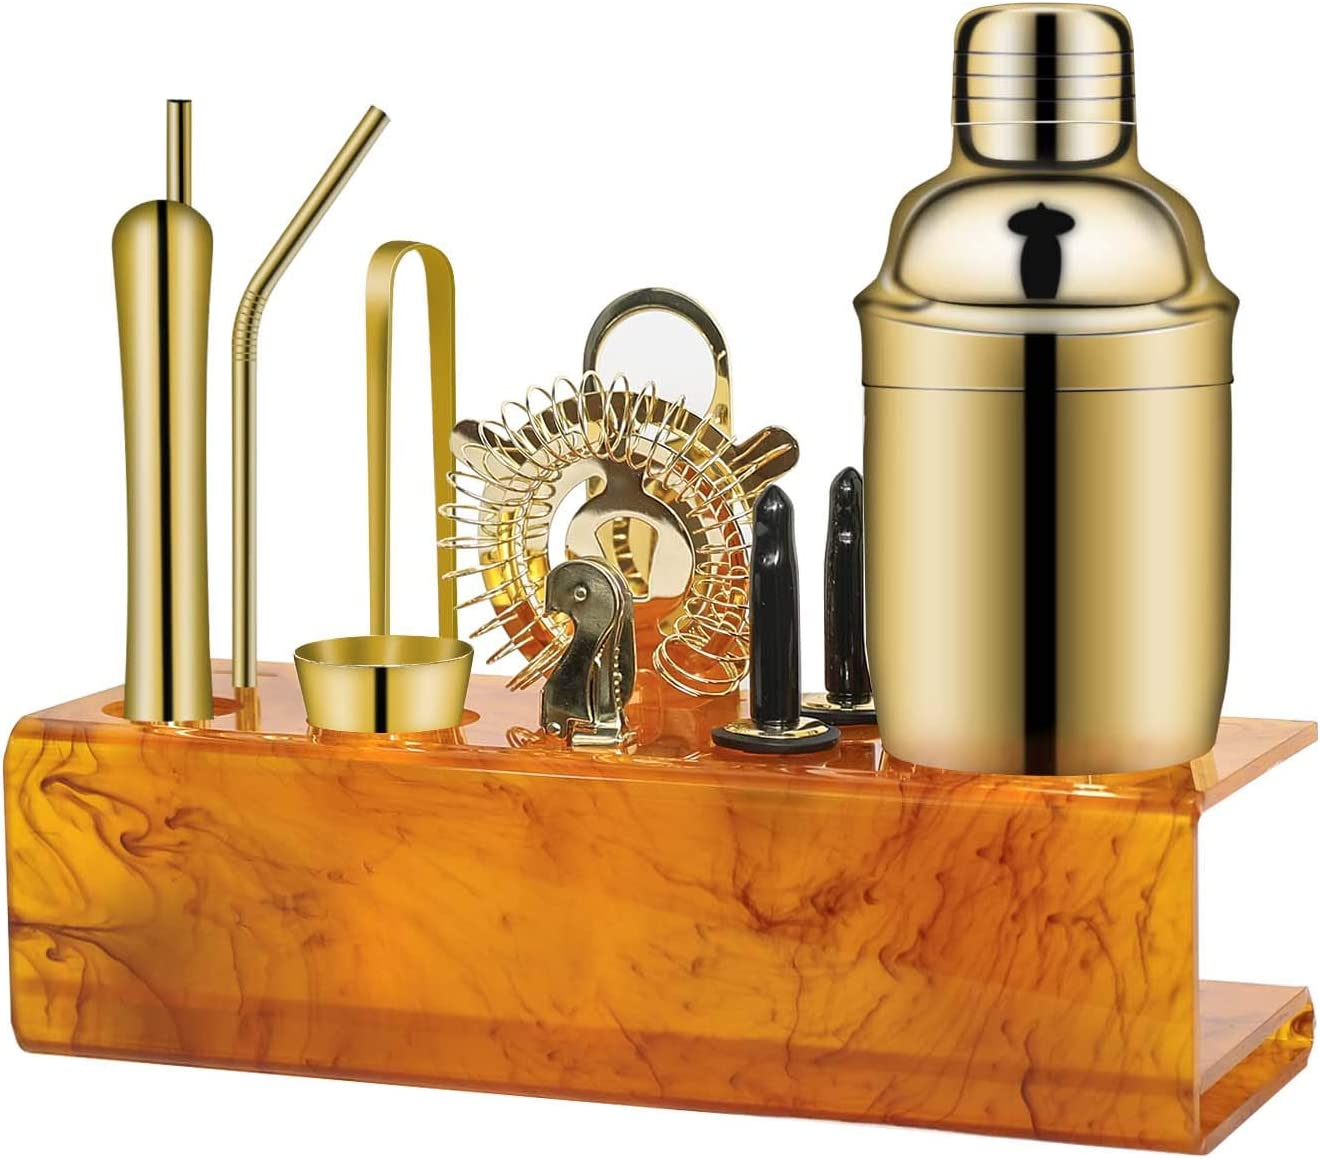 X-cosrack Bartender Kid with Amber Stand Bar set, Martini Shaker for home - gold